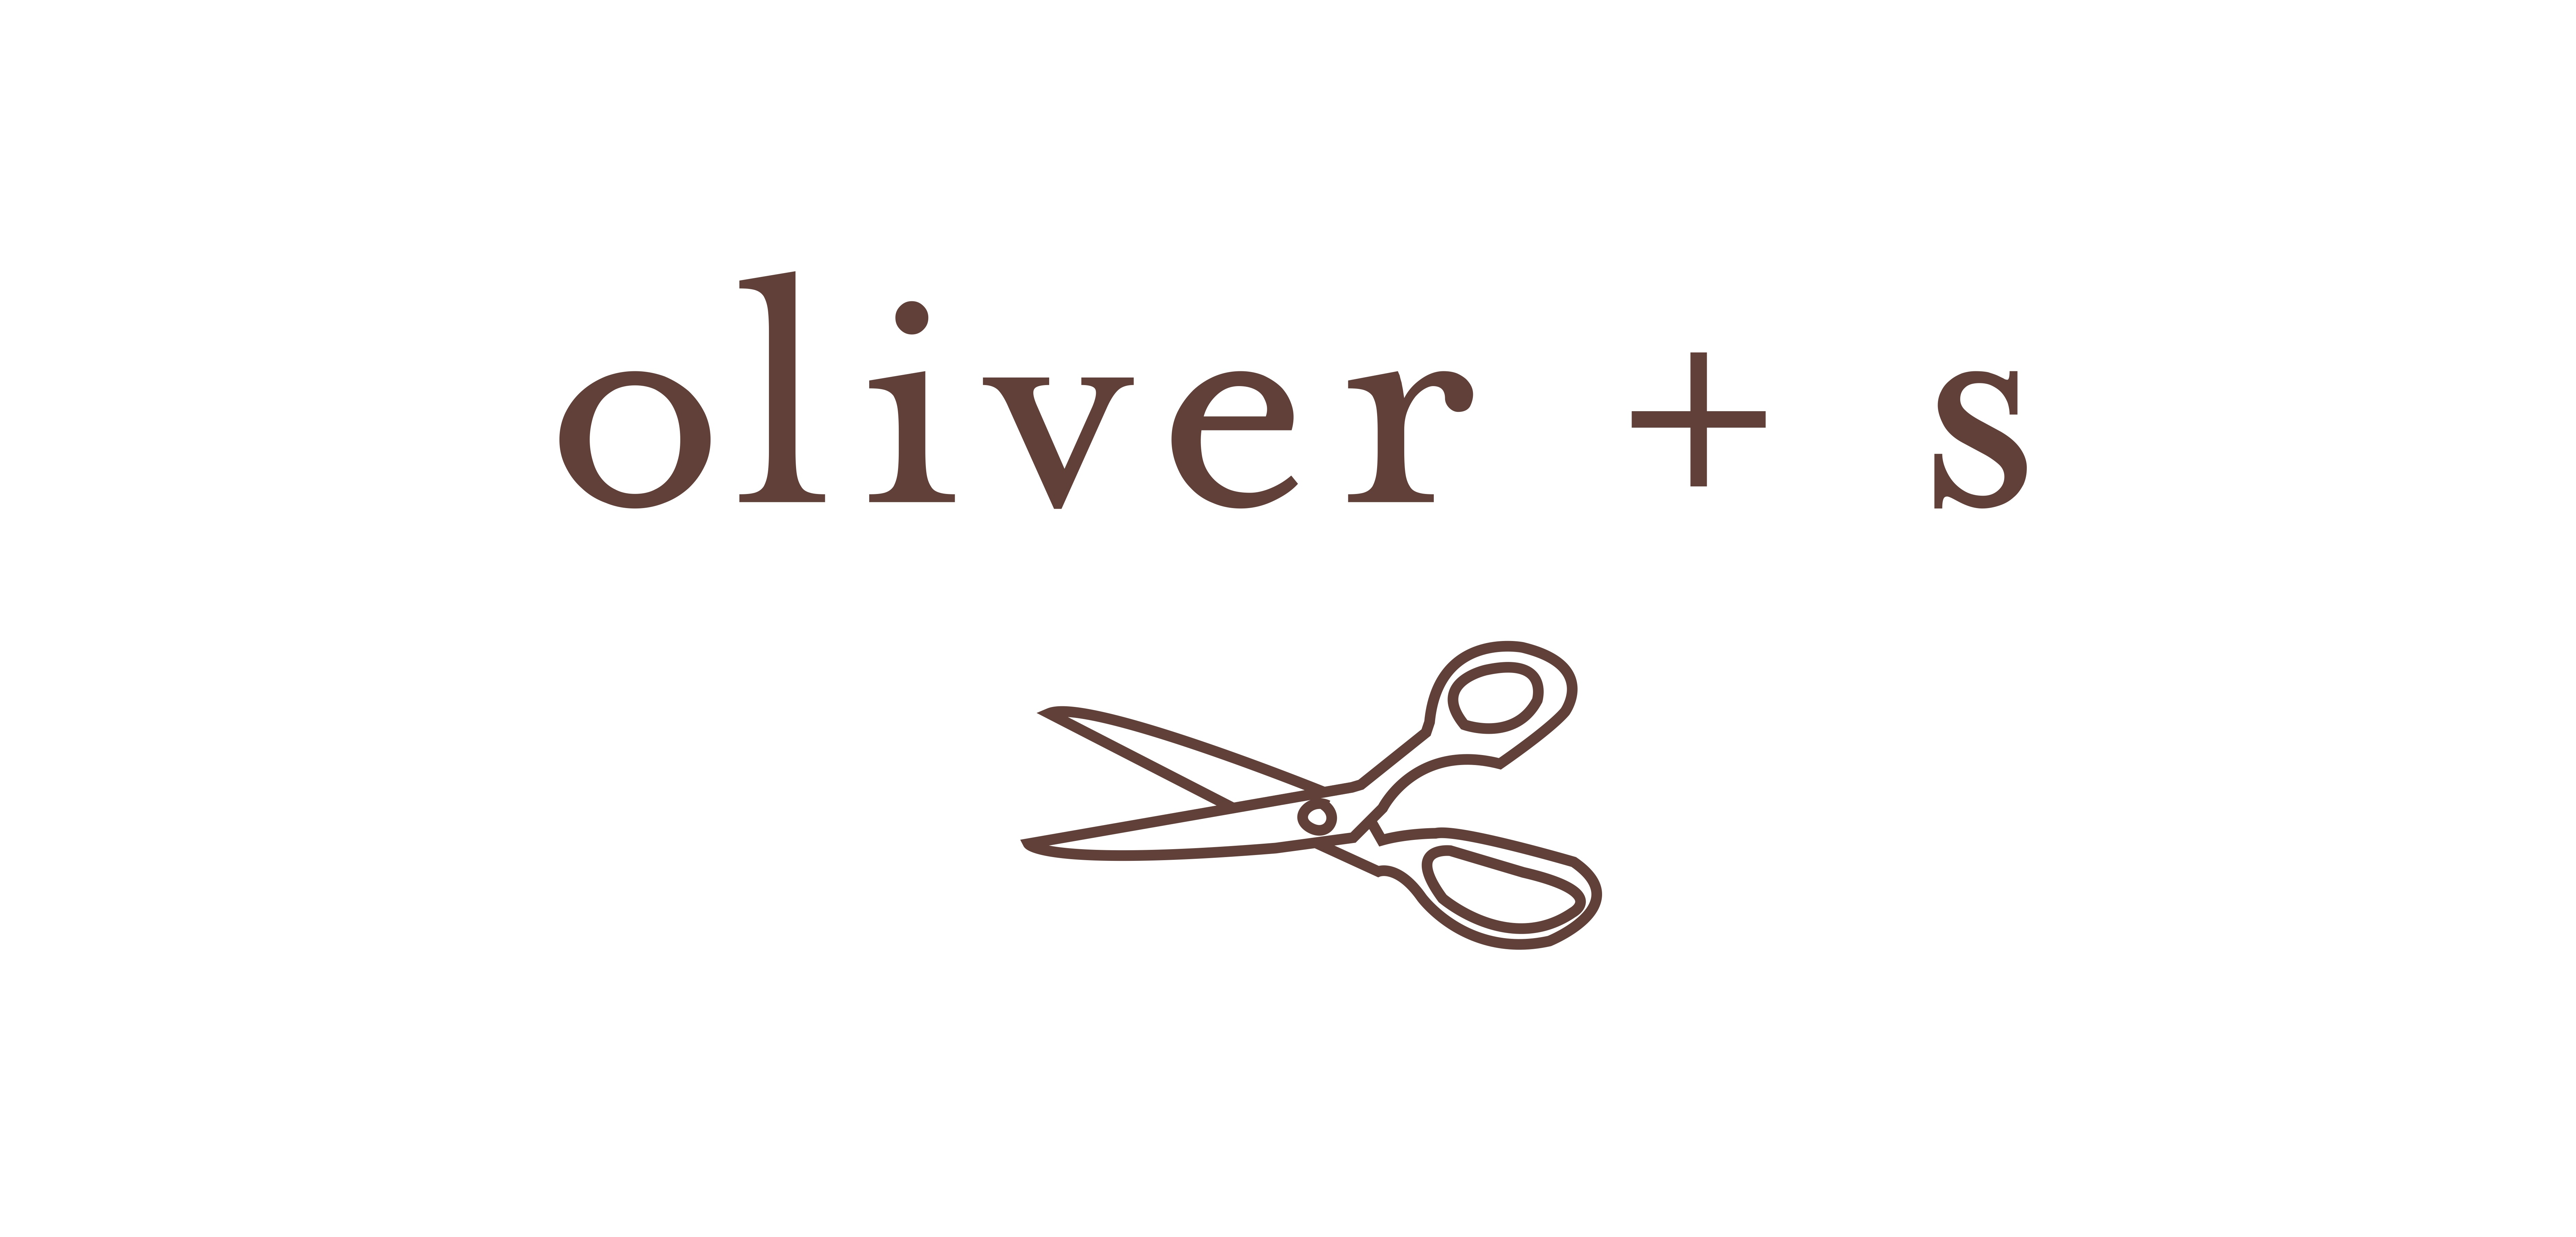 oliver + s Children's Clothing Patterns